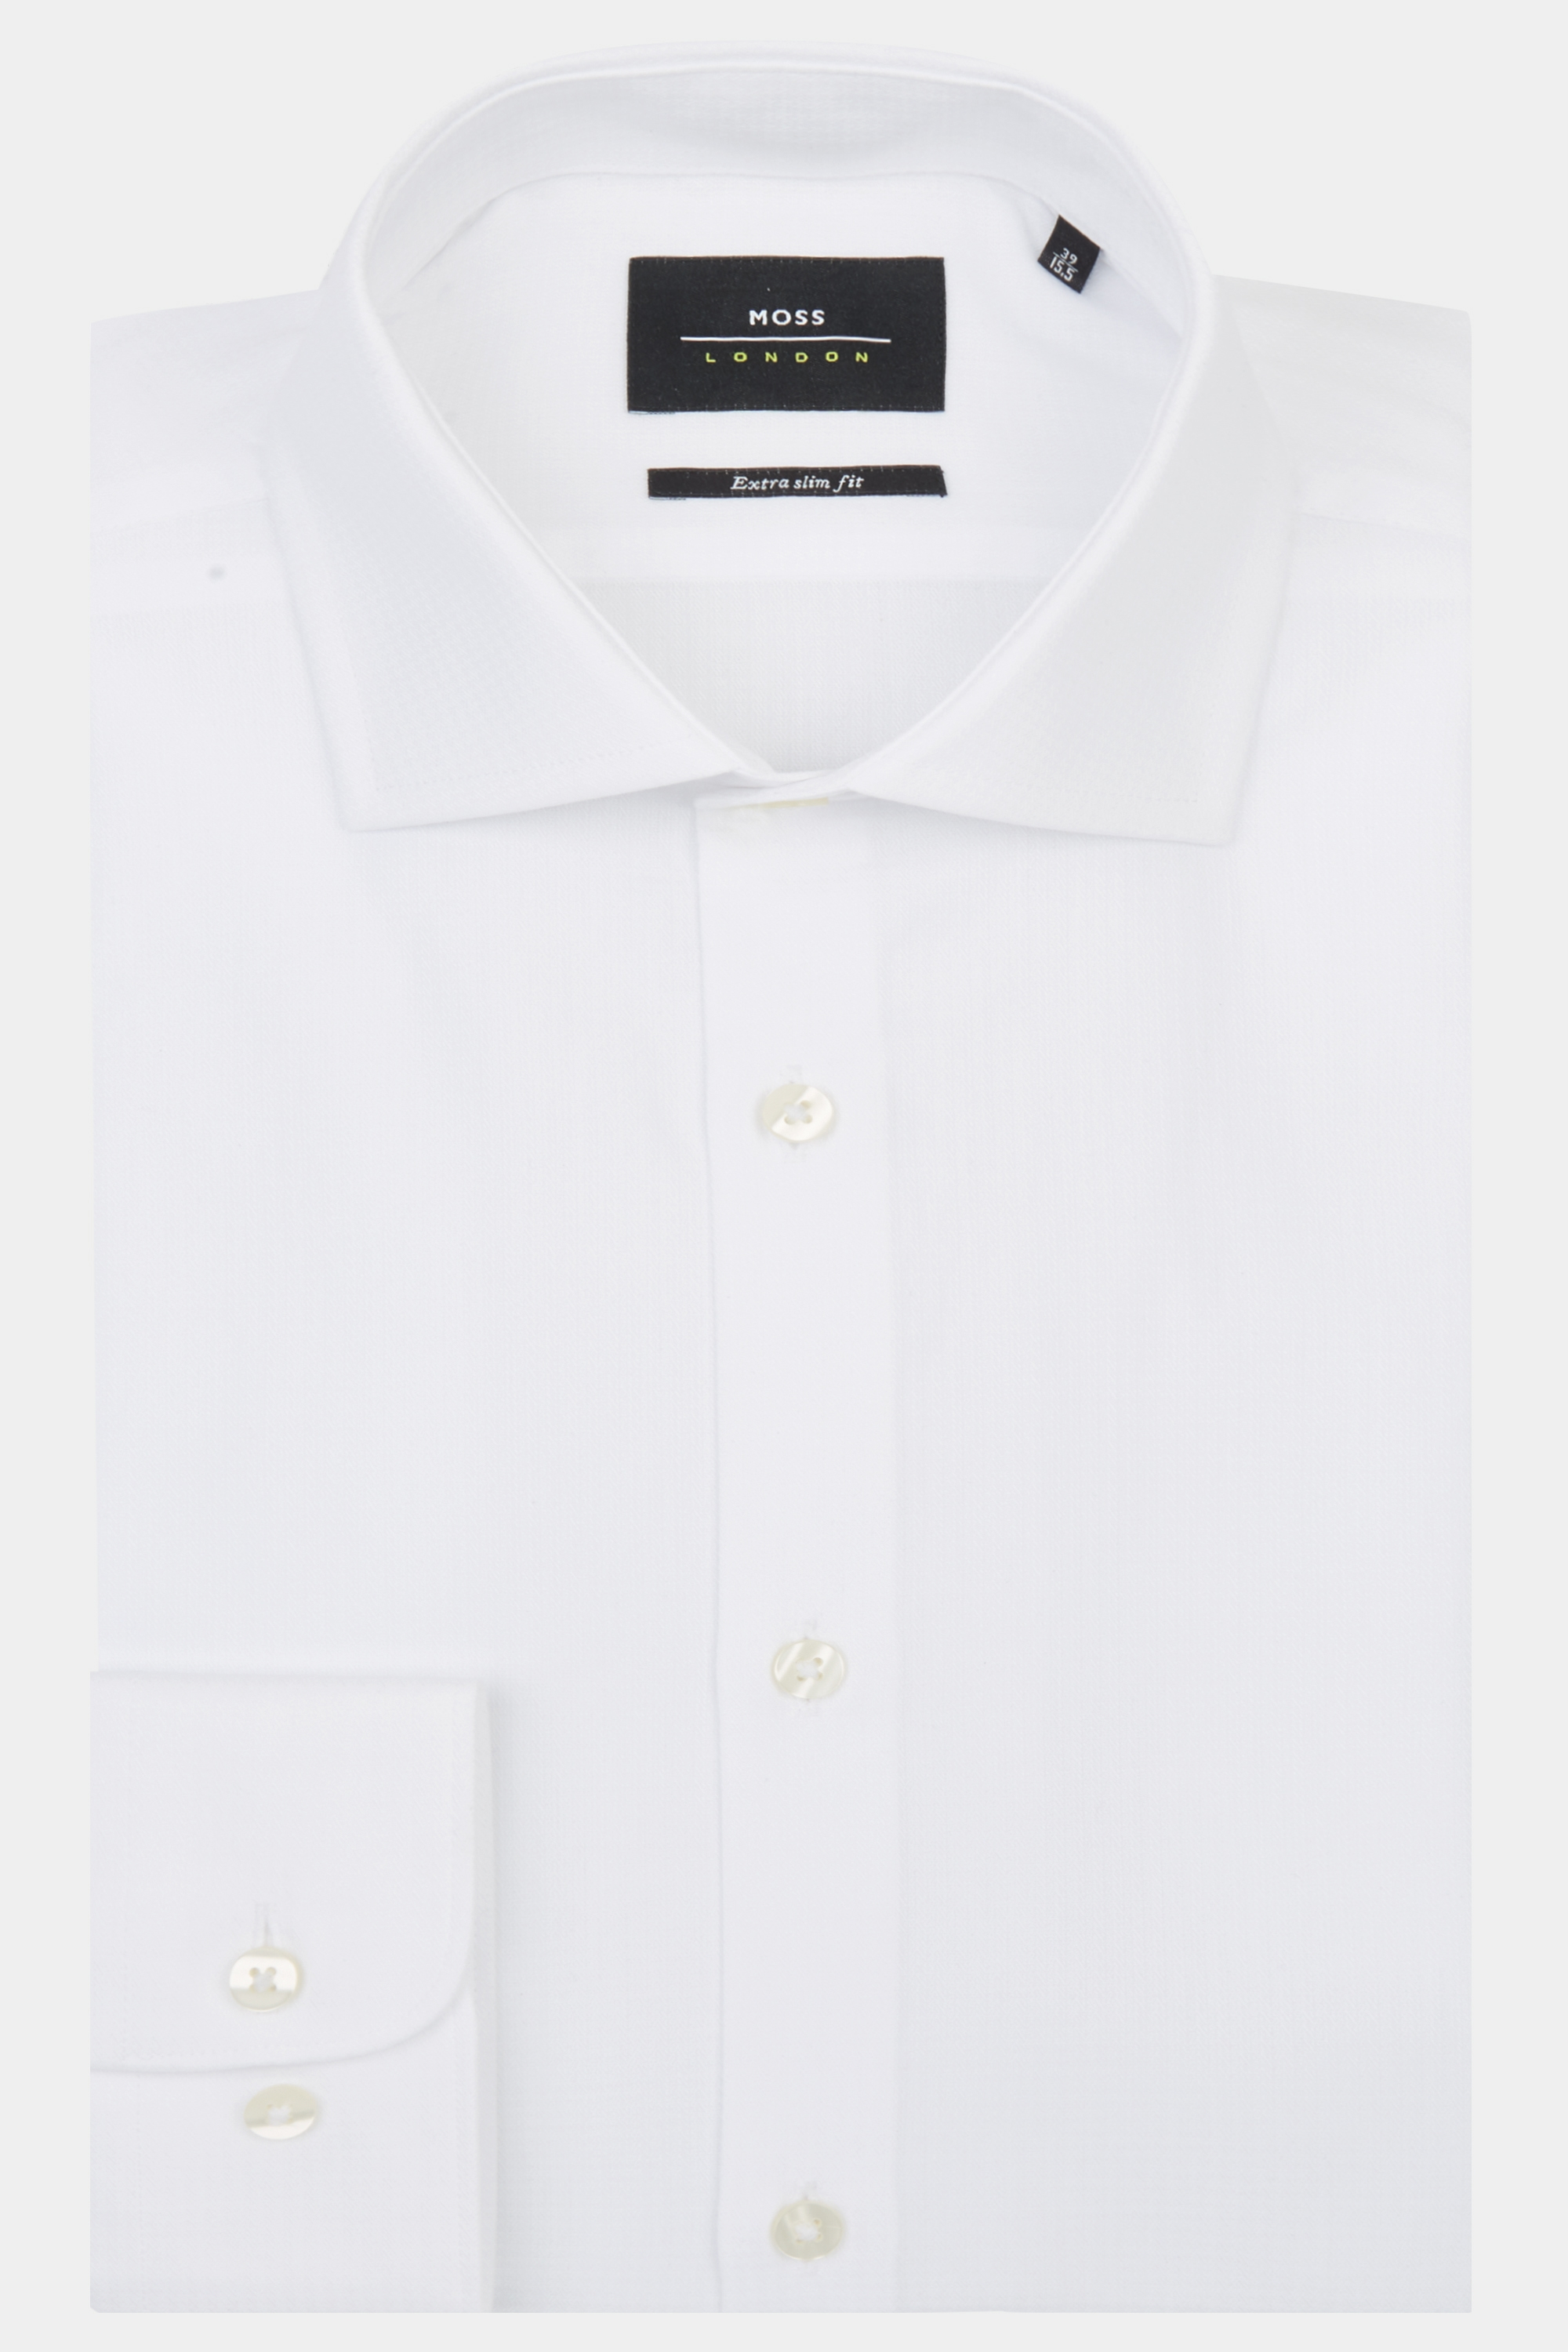 Moss Bros Moss London Premium Extra Slim Fit White Single Cuff Puppytooth Shirt